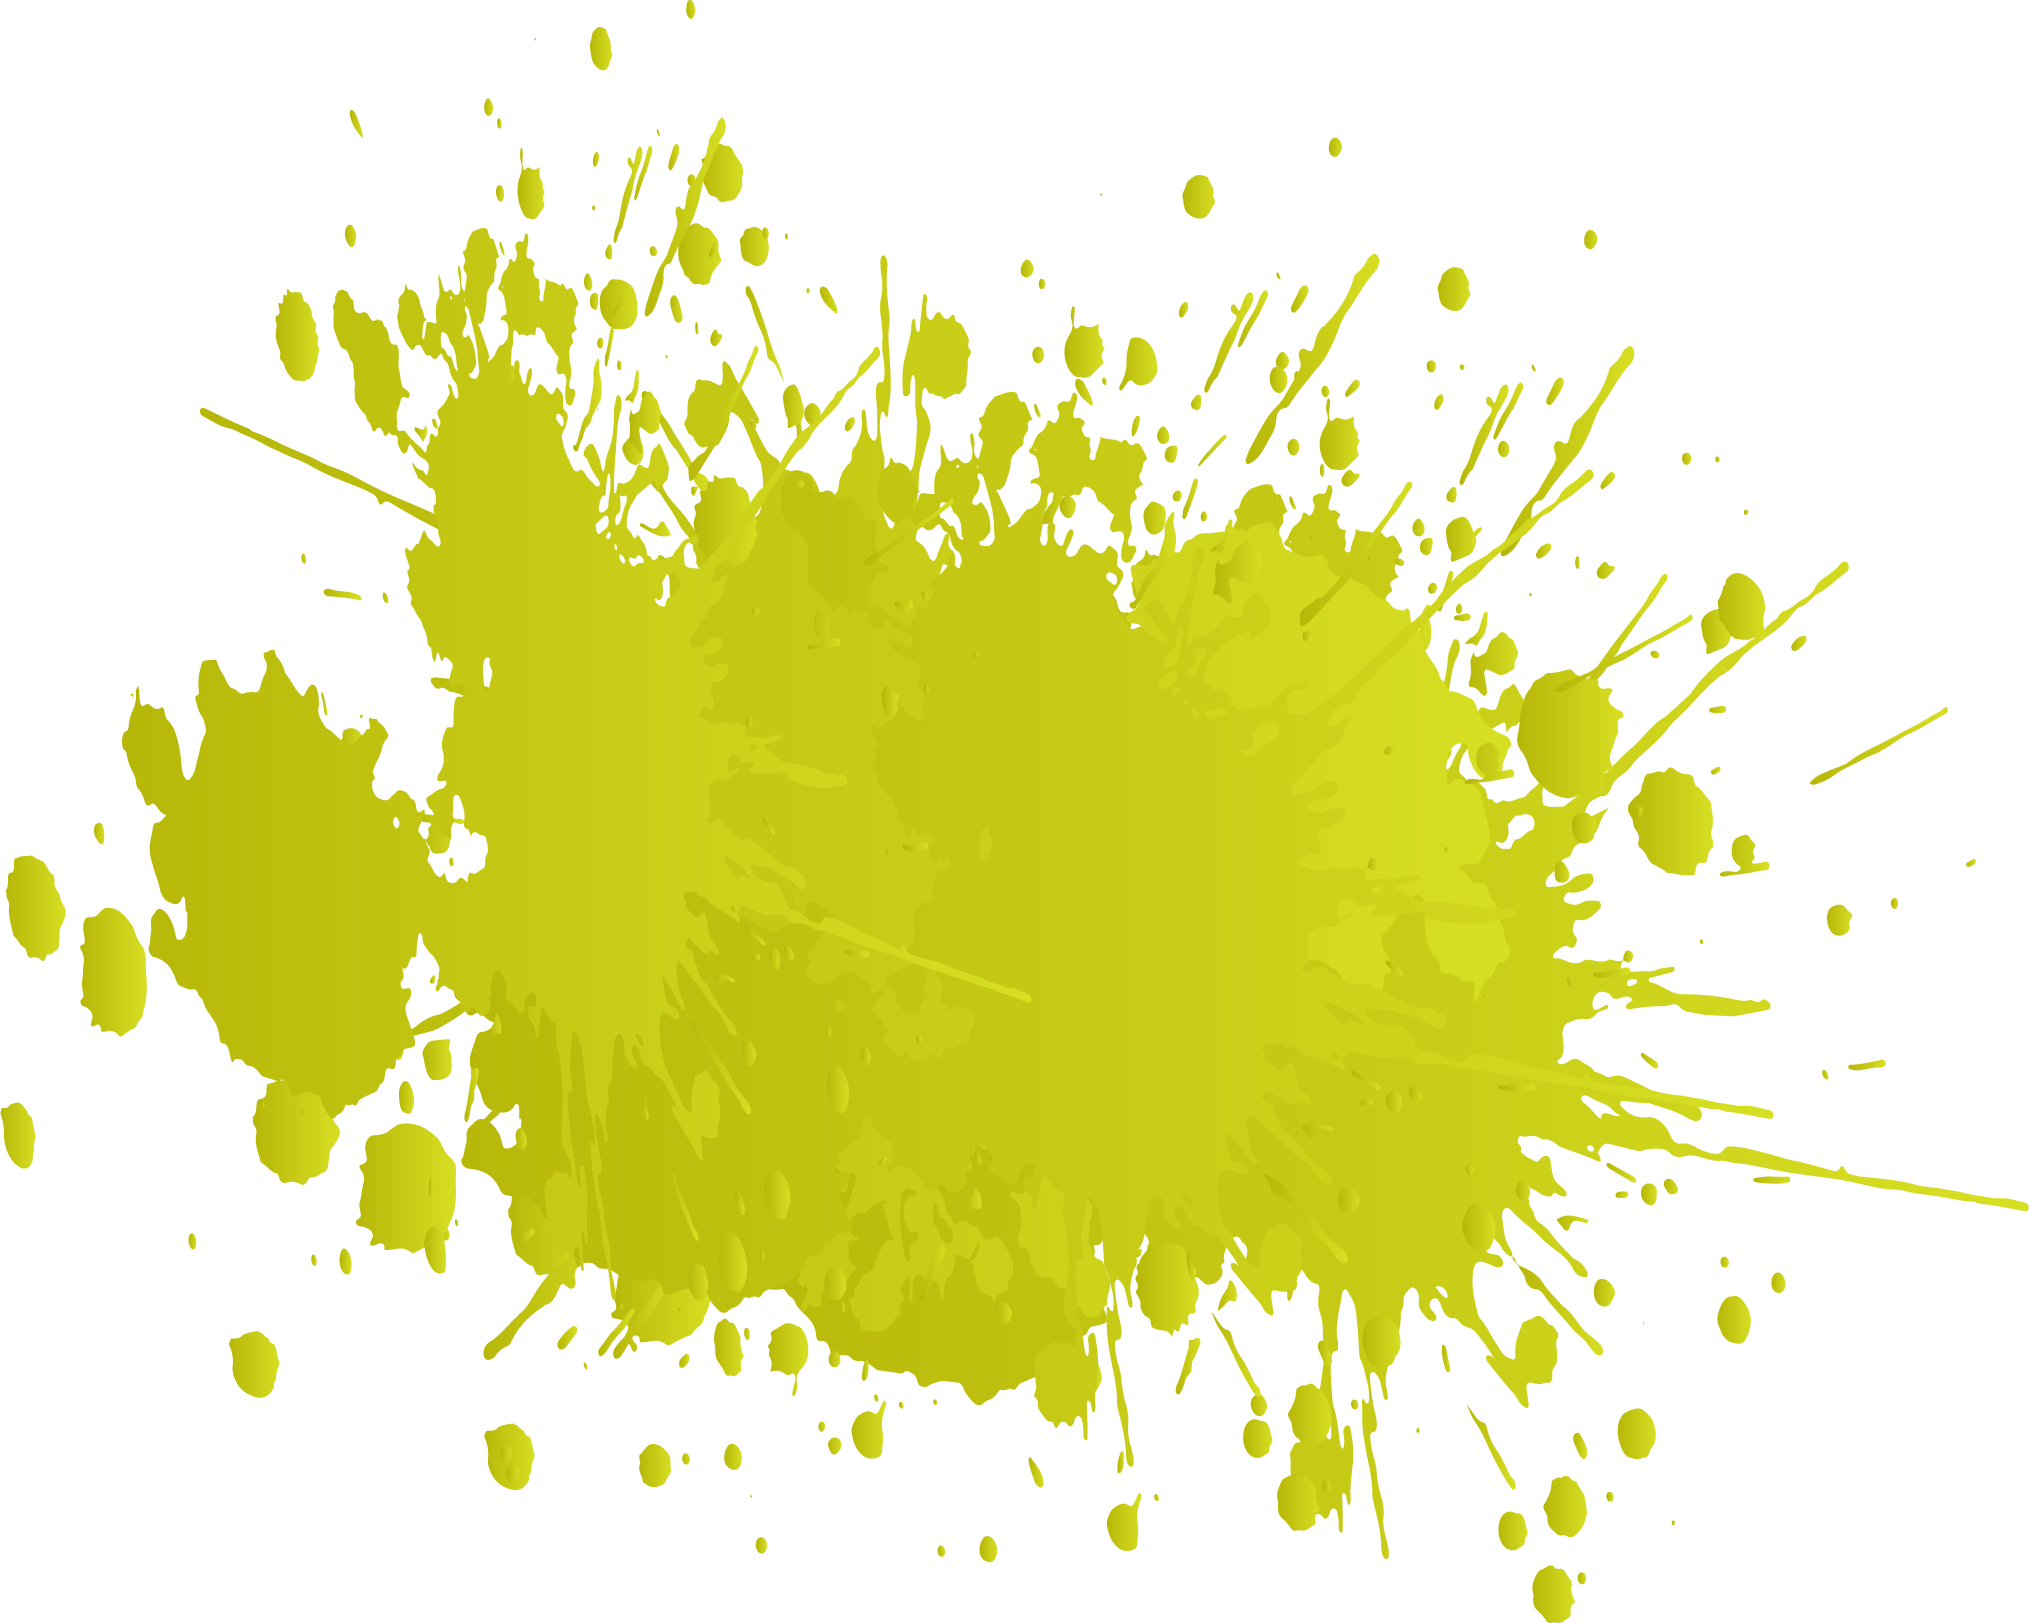 Splat transparent yellow colour. What the color of